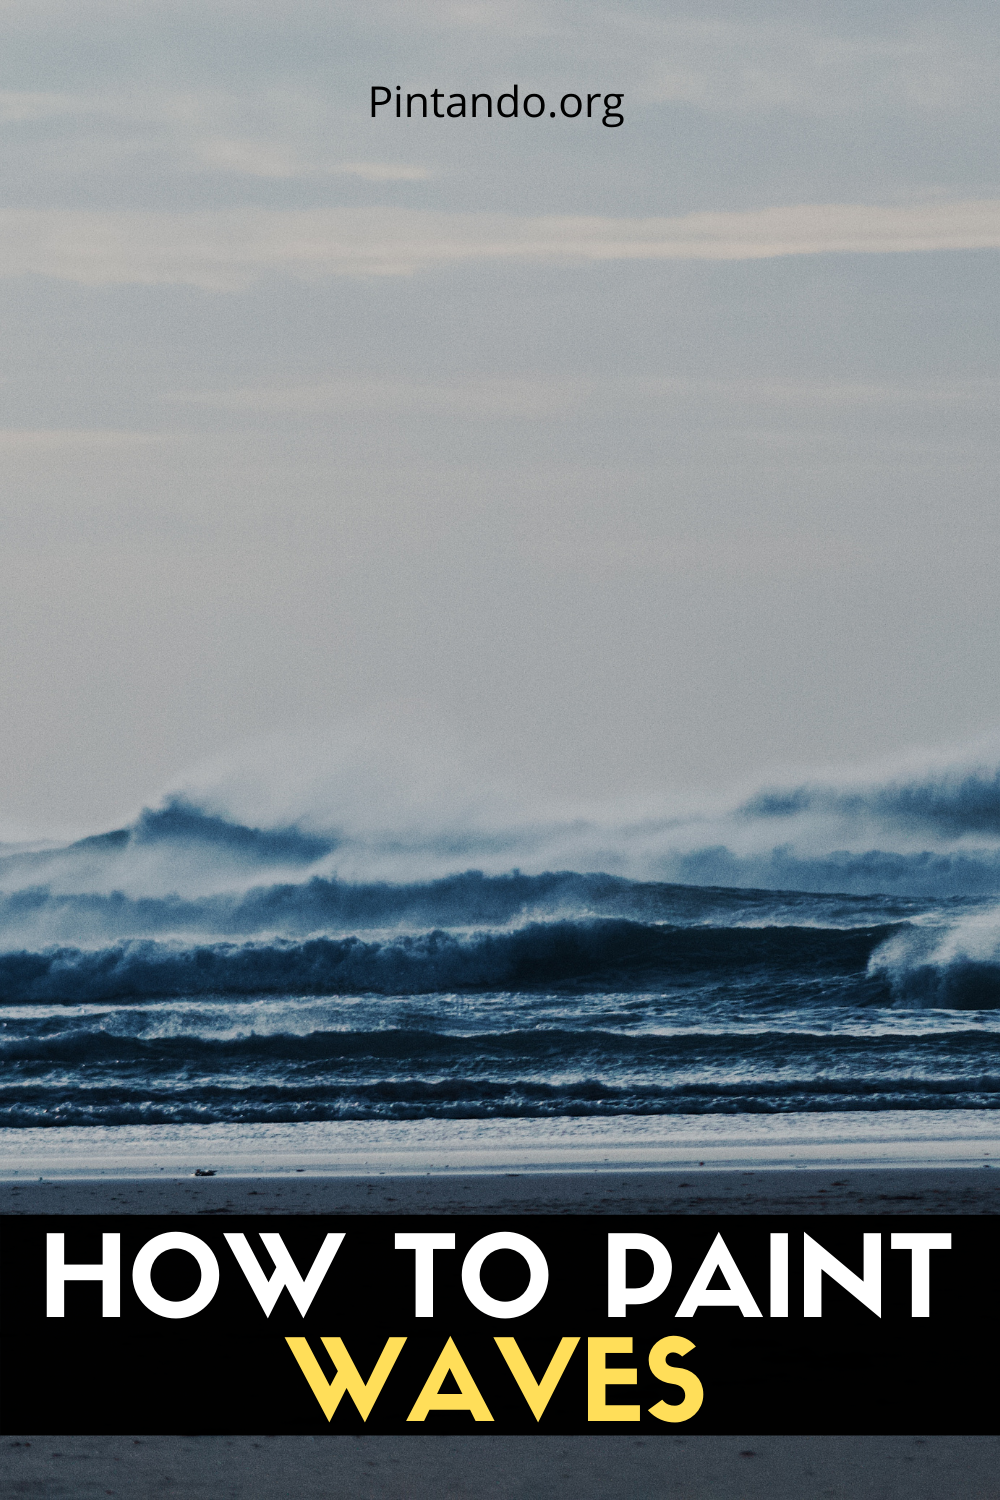 HOW TO PAINT WAVES (1)